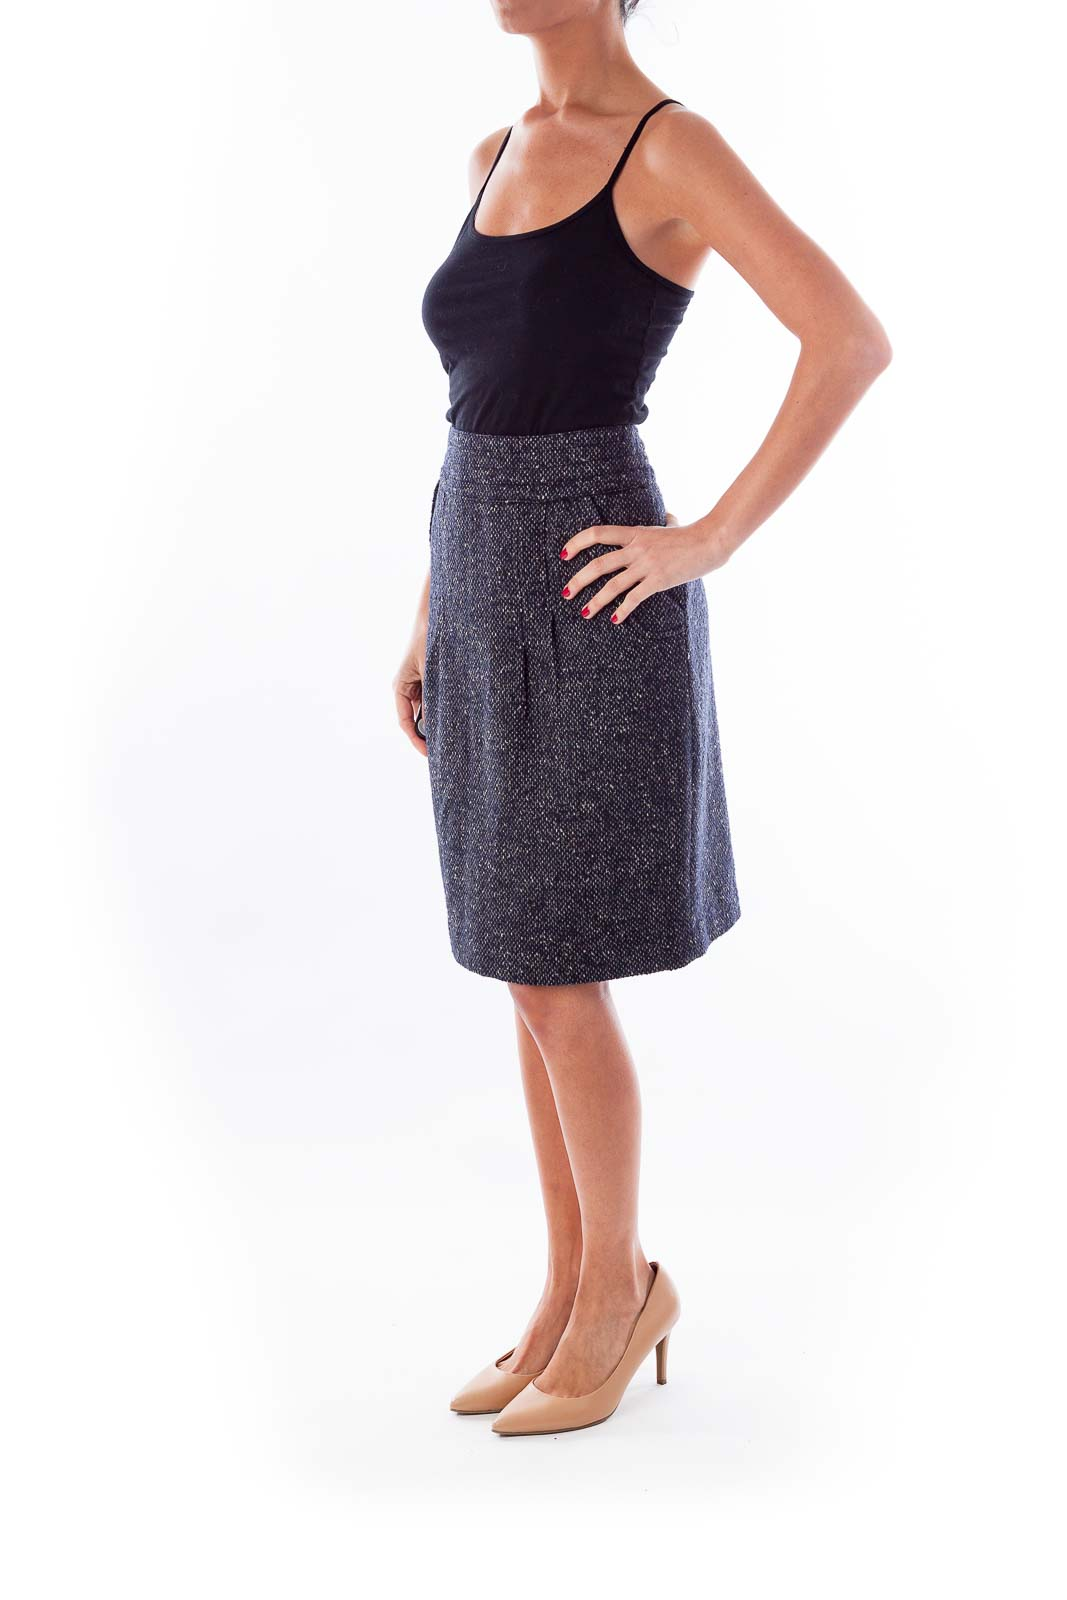 Black & White Tweed Pencil Skirt